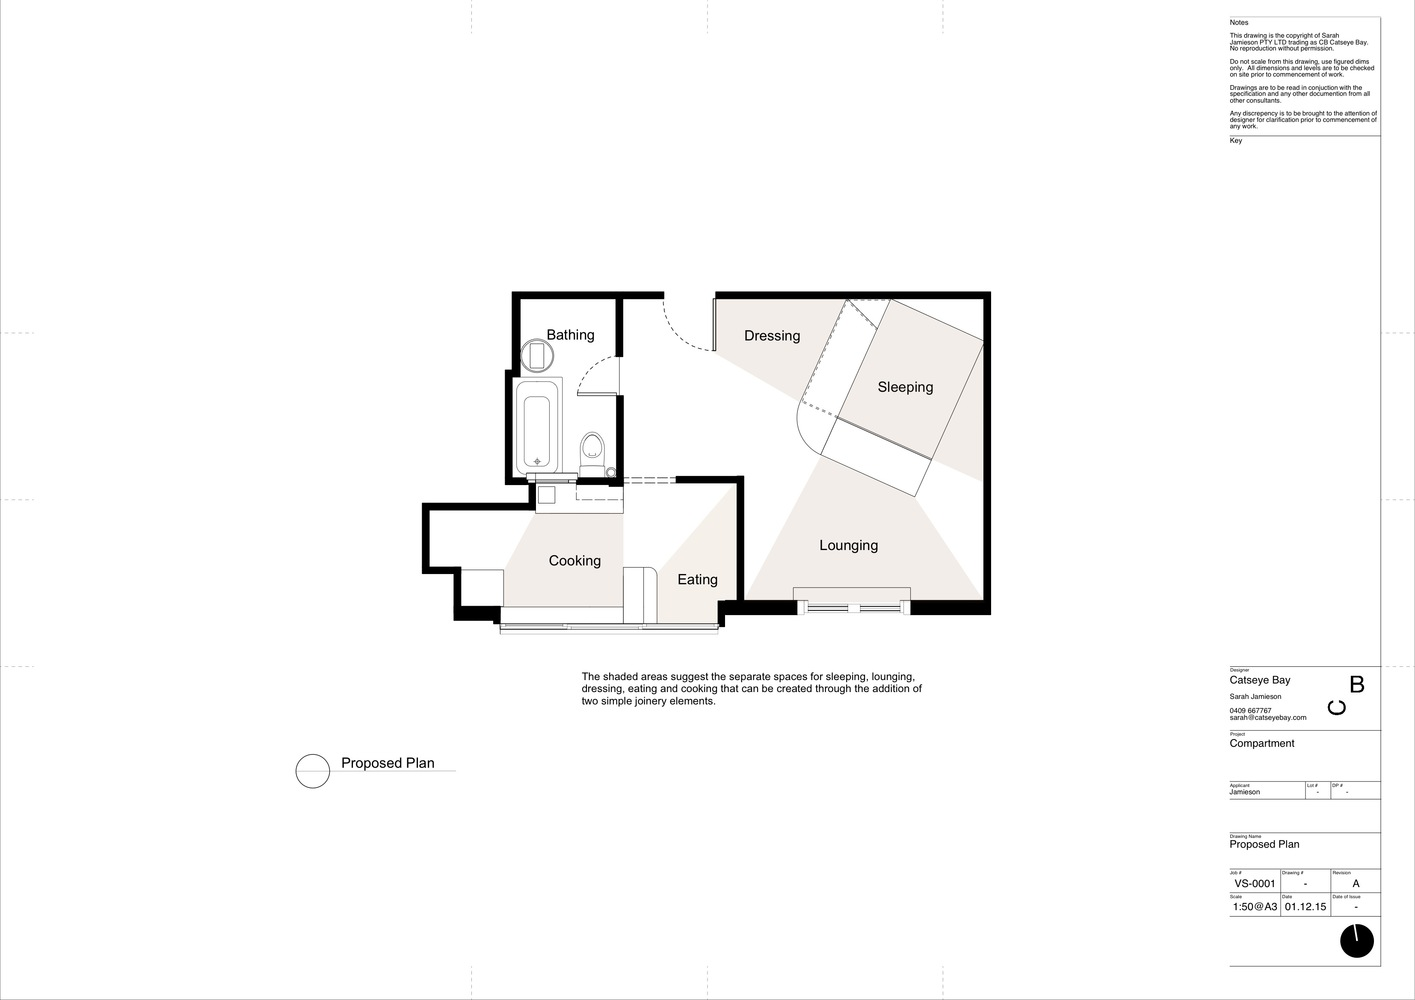 Gallery of Small and Sculpted Studio Apartment / Catseye Bay ...